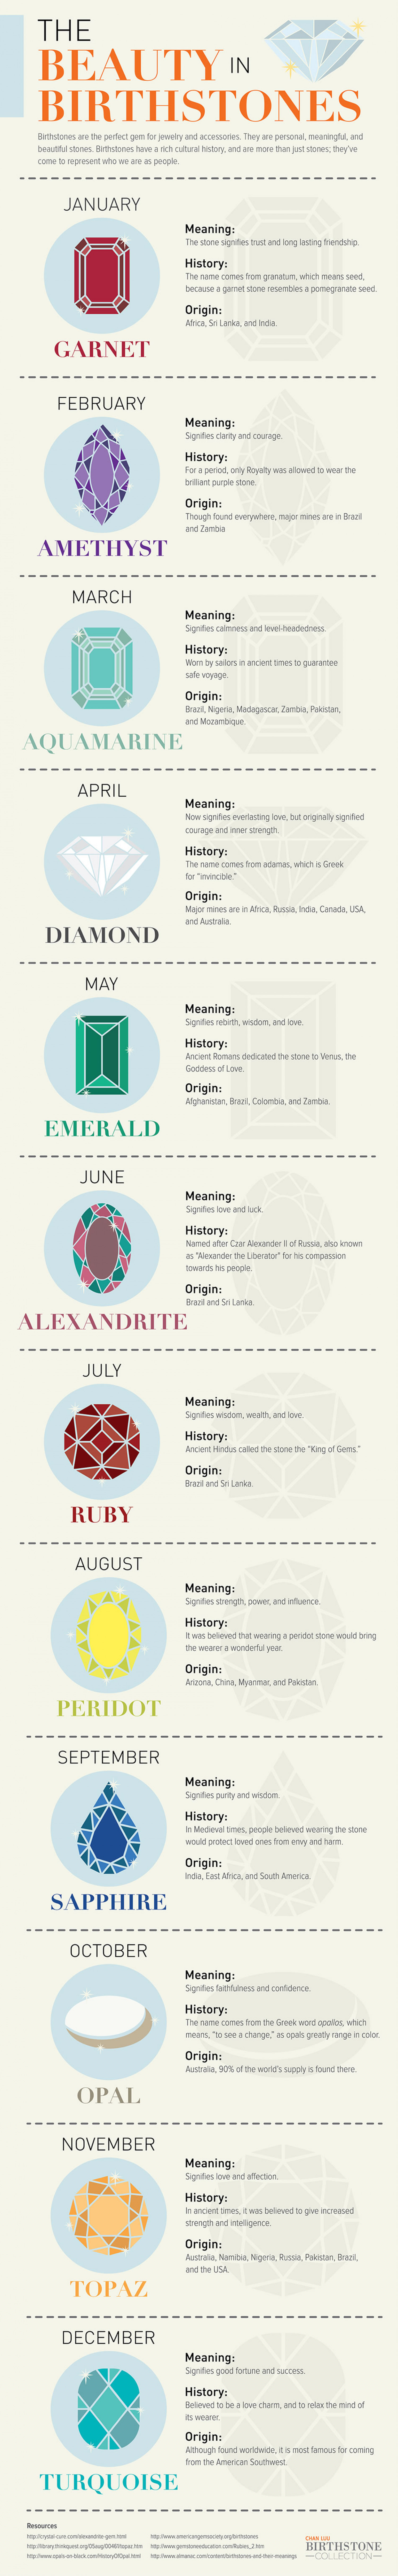 The Beauty in Birthstones Infographic